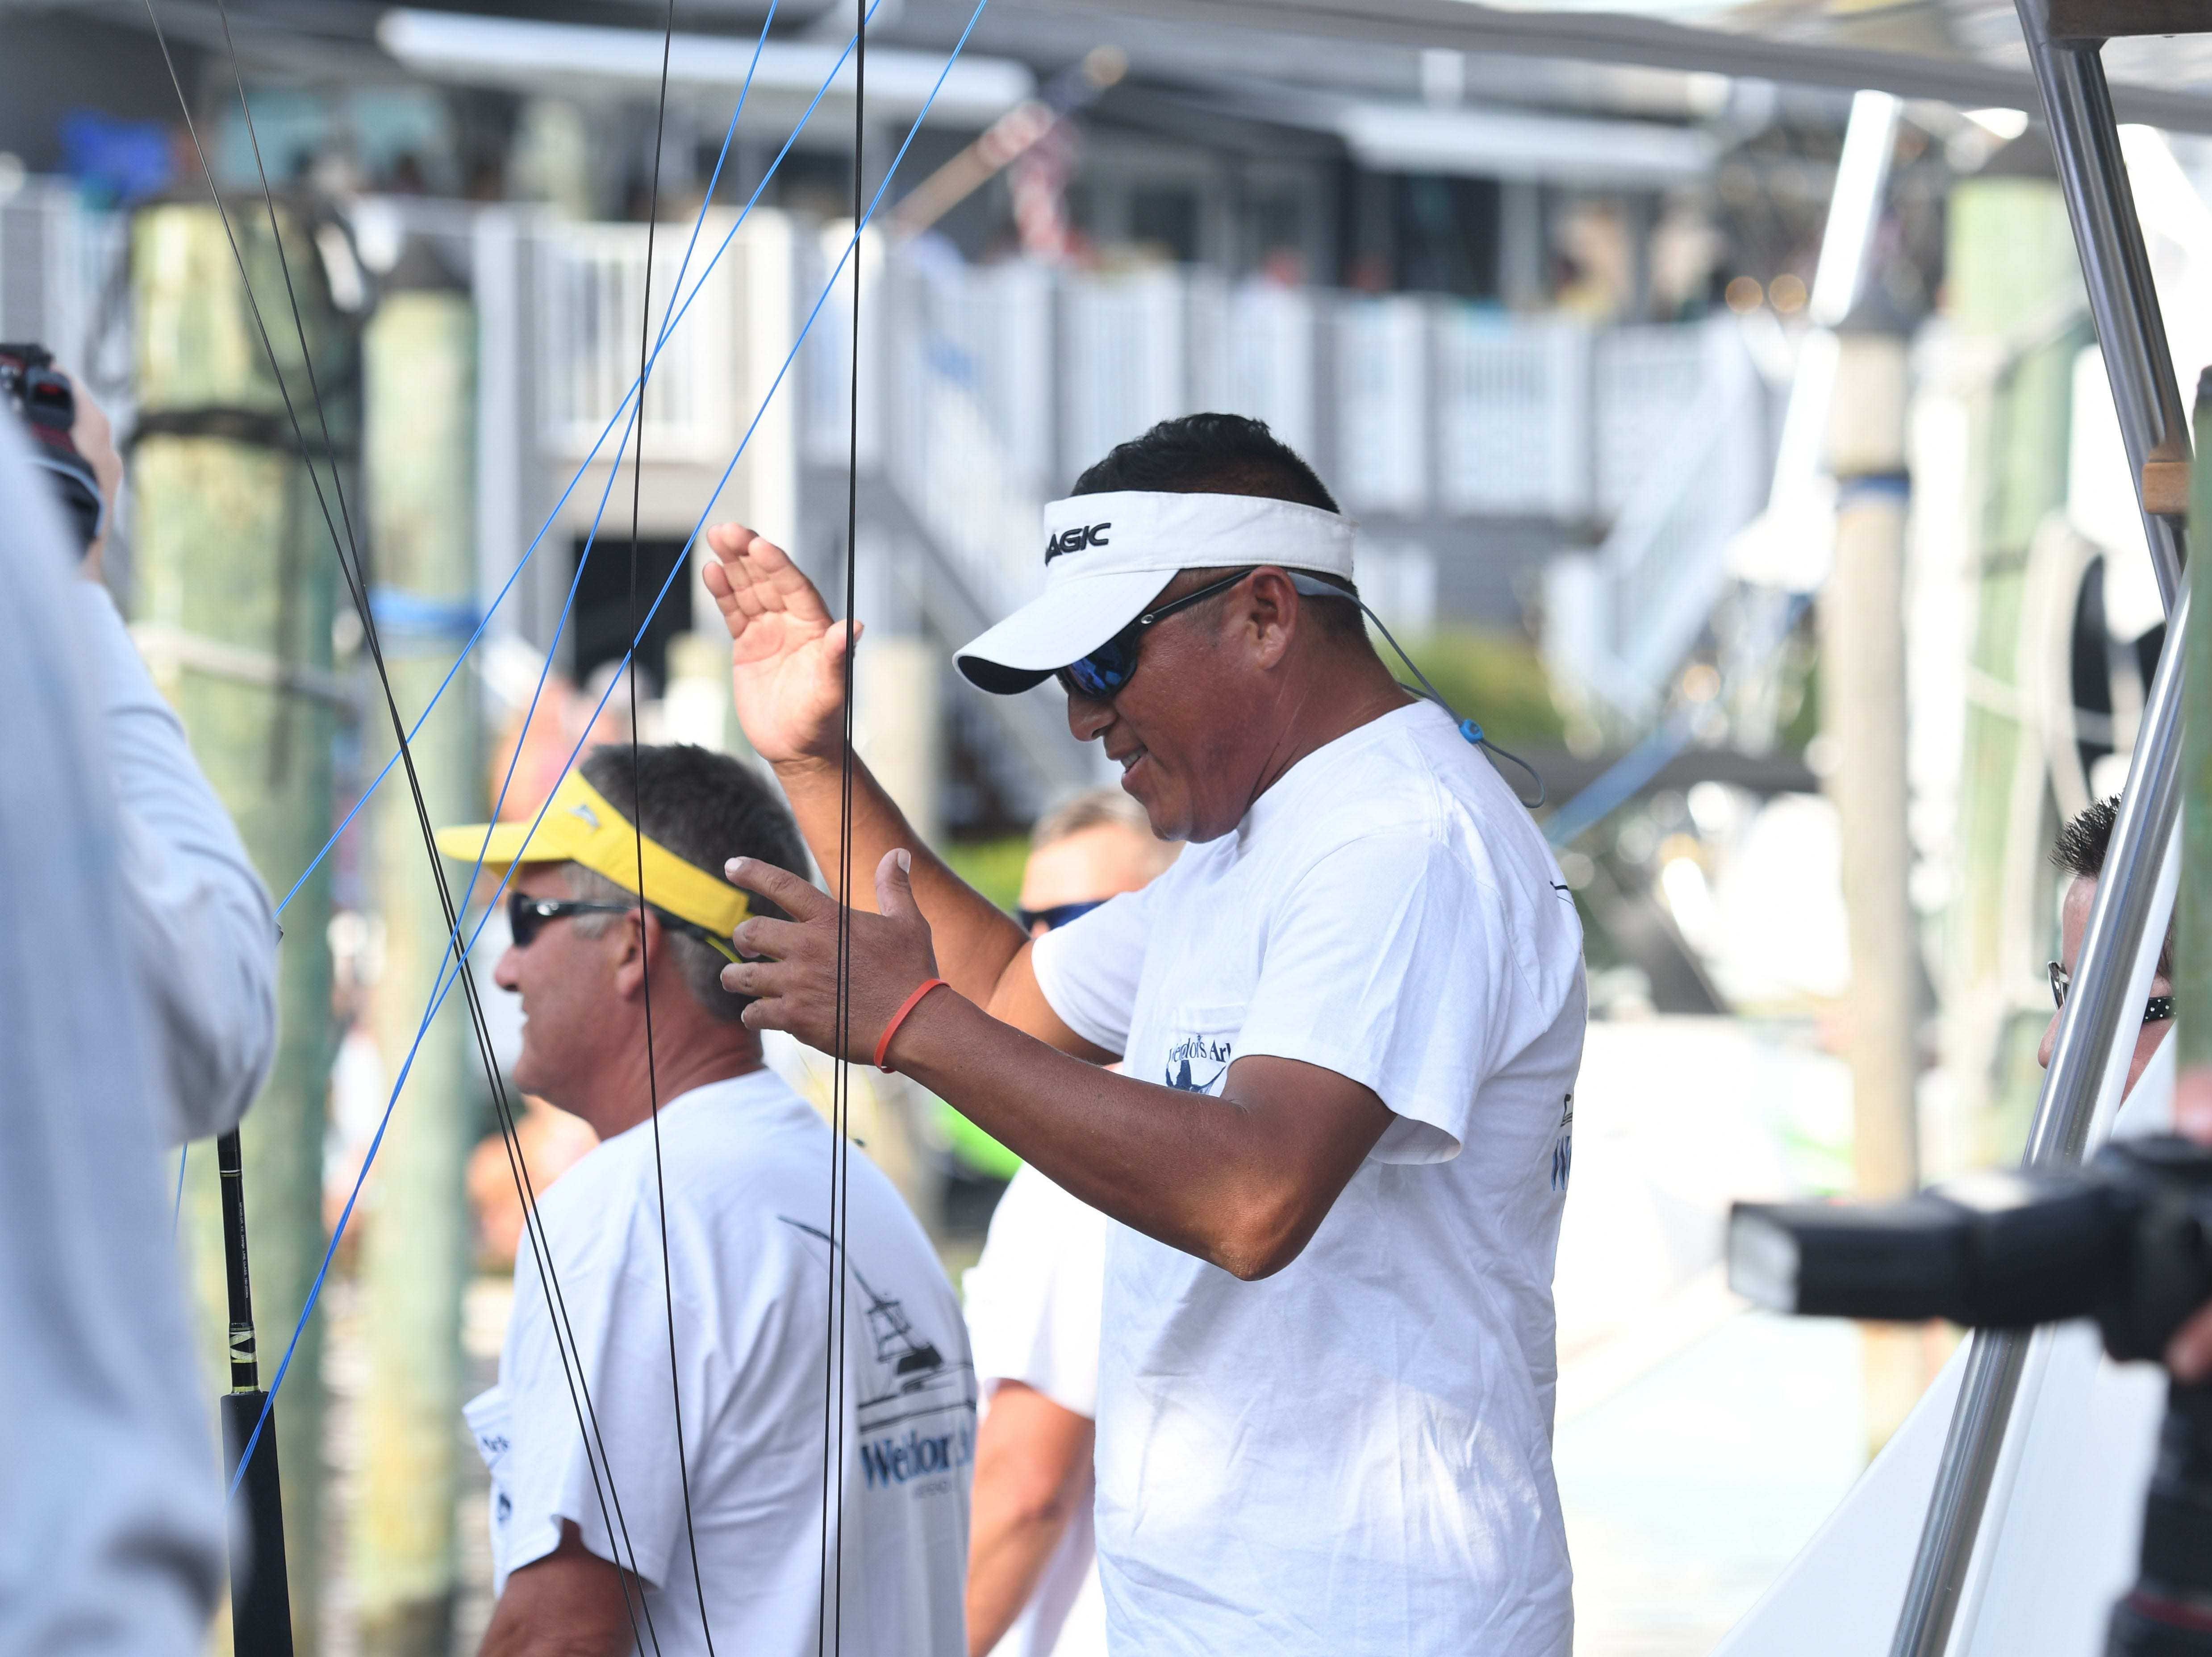 Angler Pascual Jimenez cheers aboard the Weldor's Ark after learning he is now tied for first place with an 83 pound white marlin during the 45th Annual White Marlin Open in Ocean City, Md. on Friday, August 10, 2018.